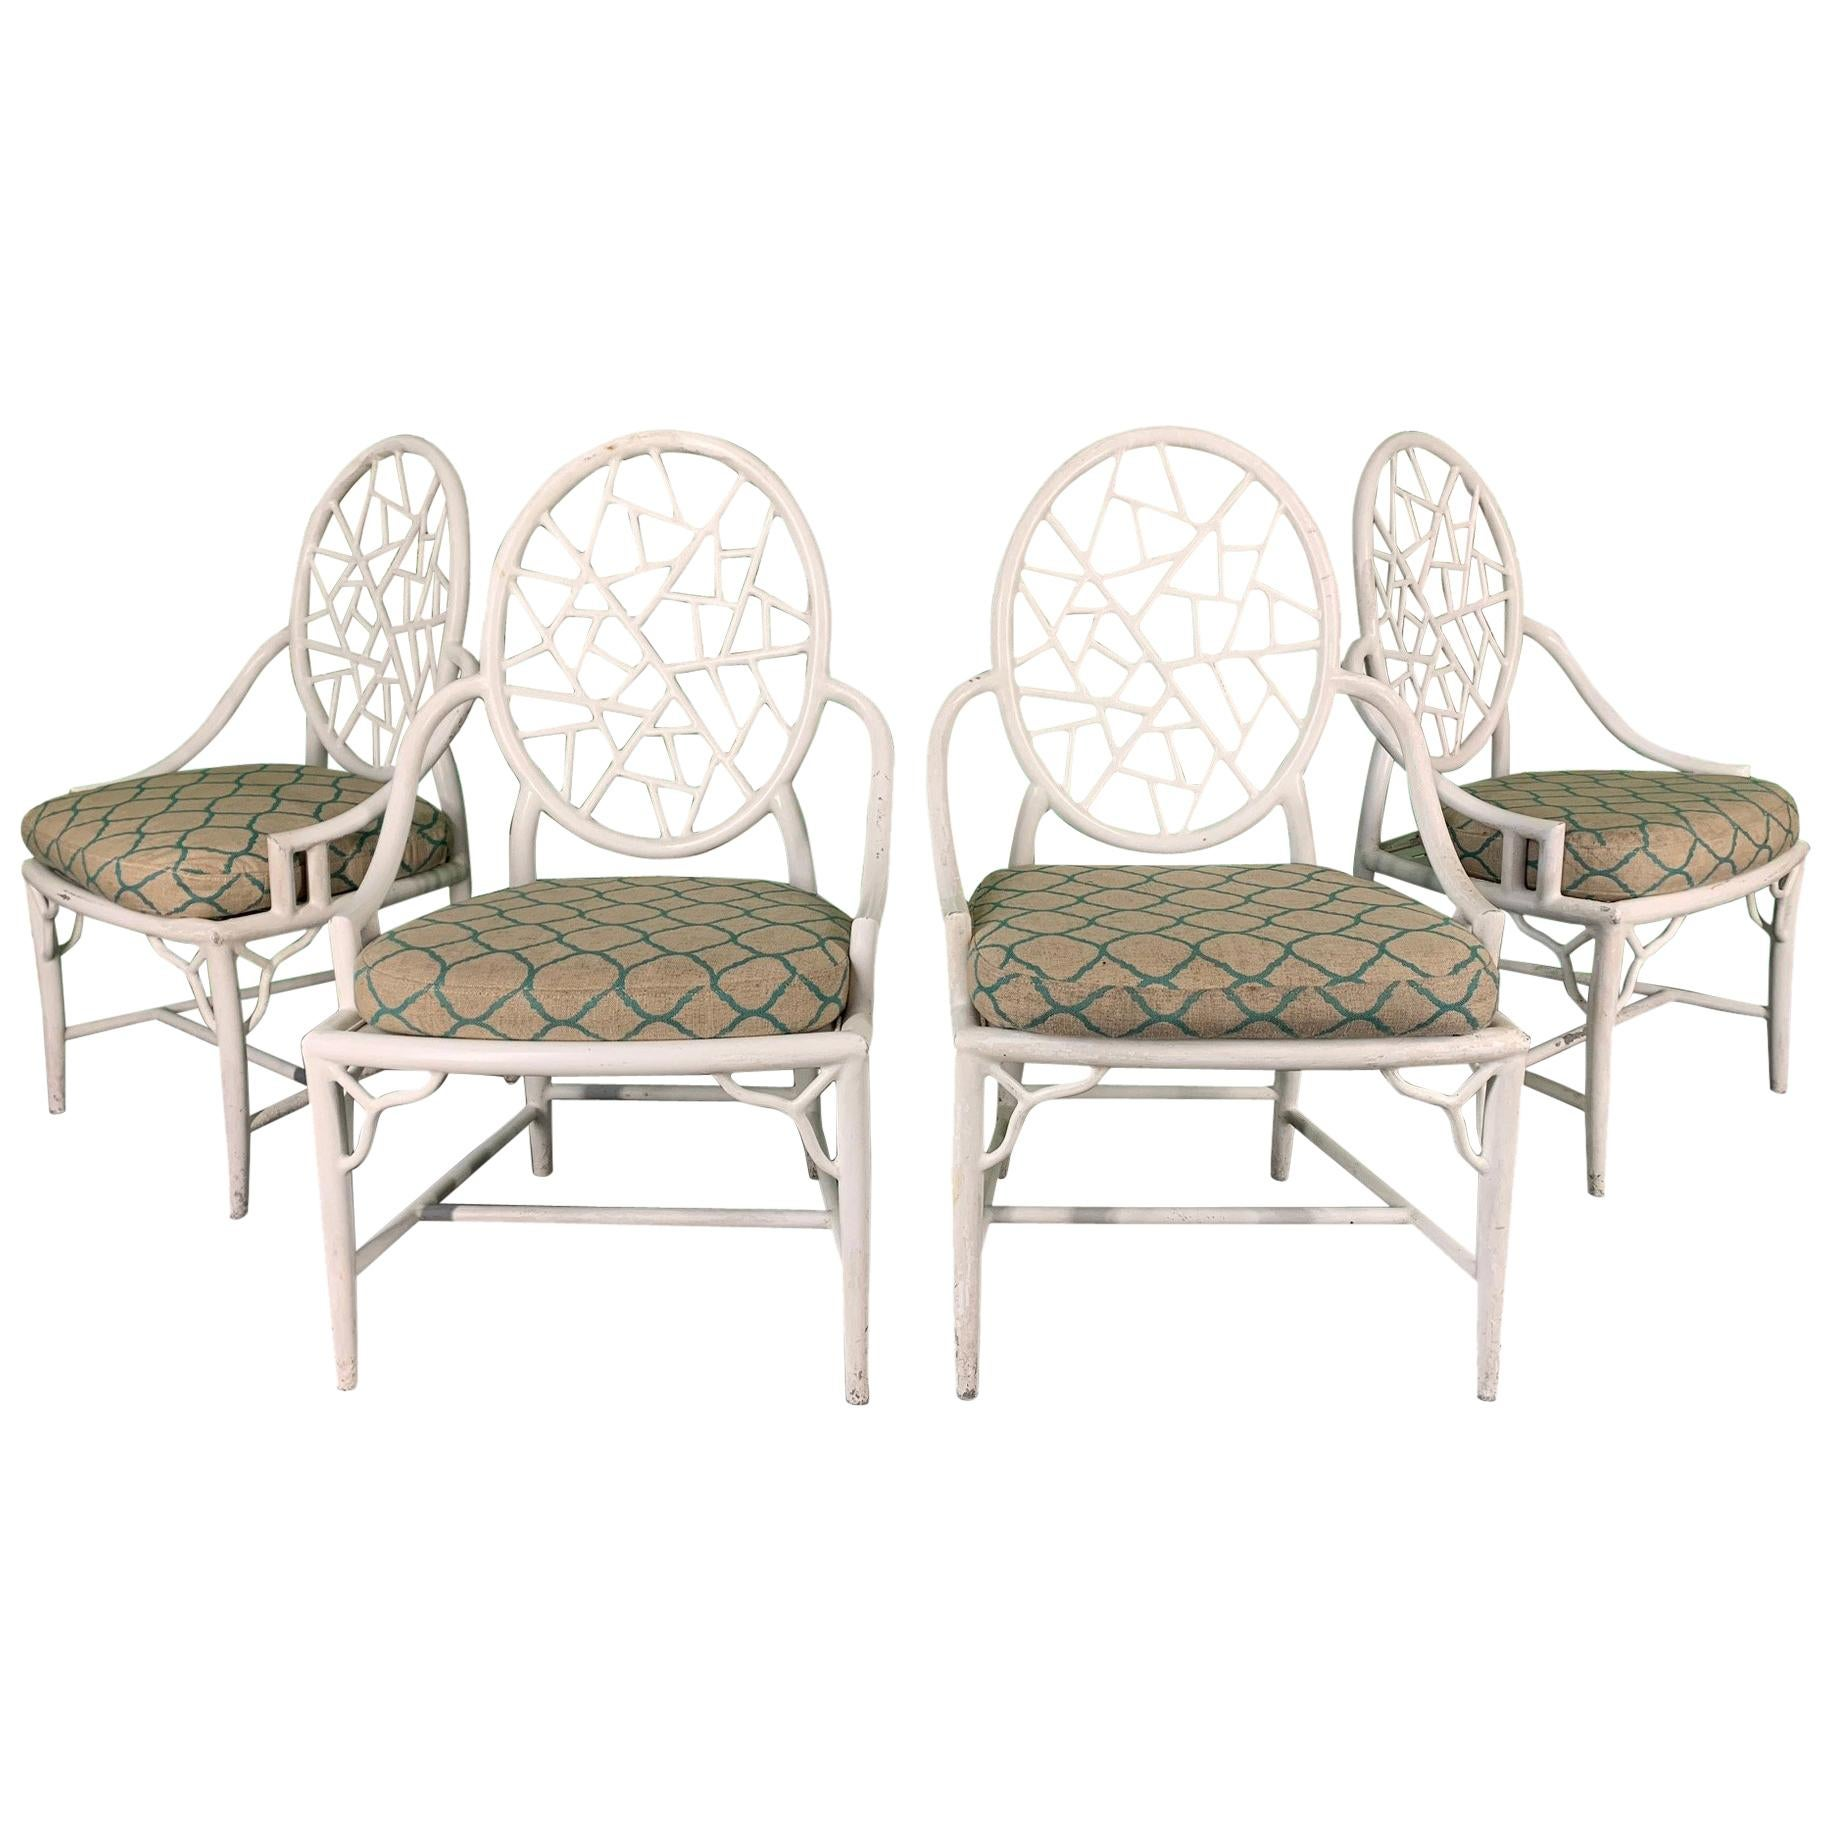 225 & McGuire Style Cracked Ice Metal Dining Chairs